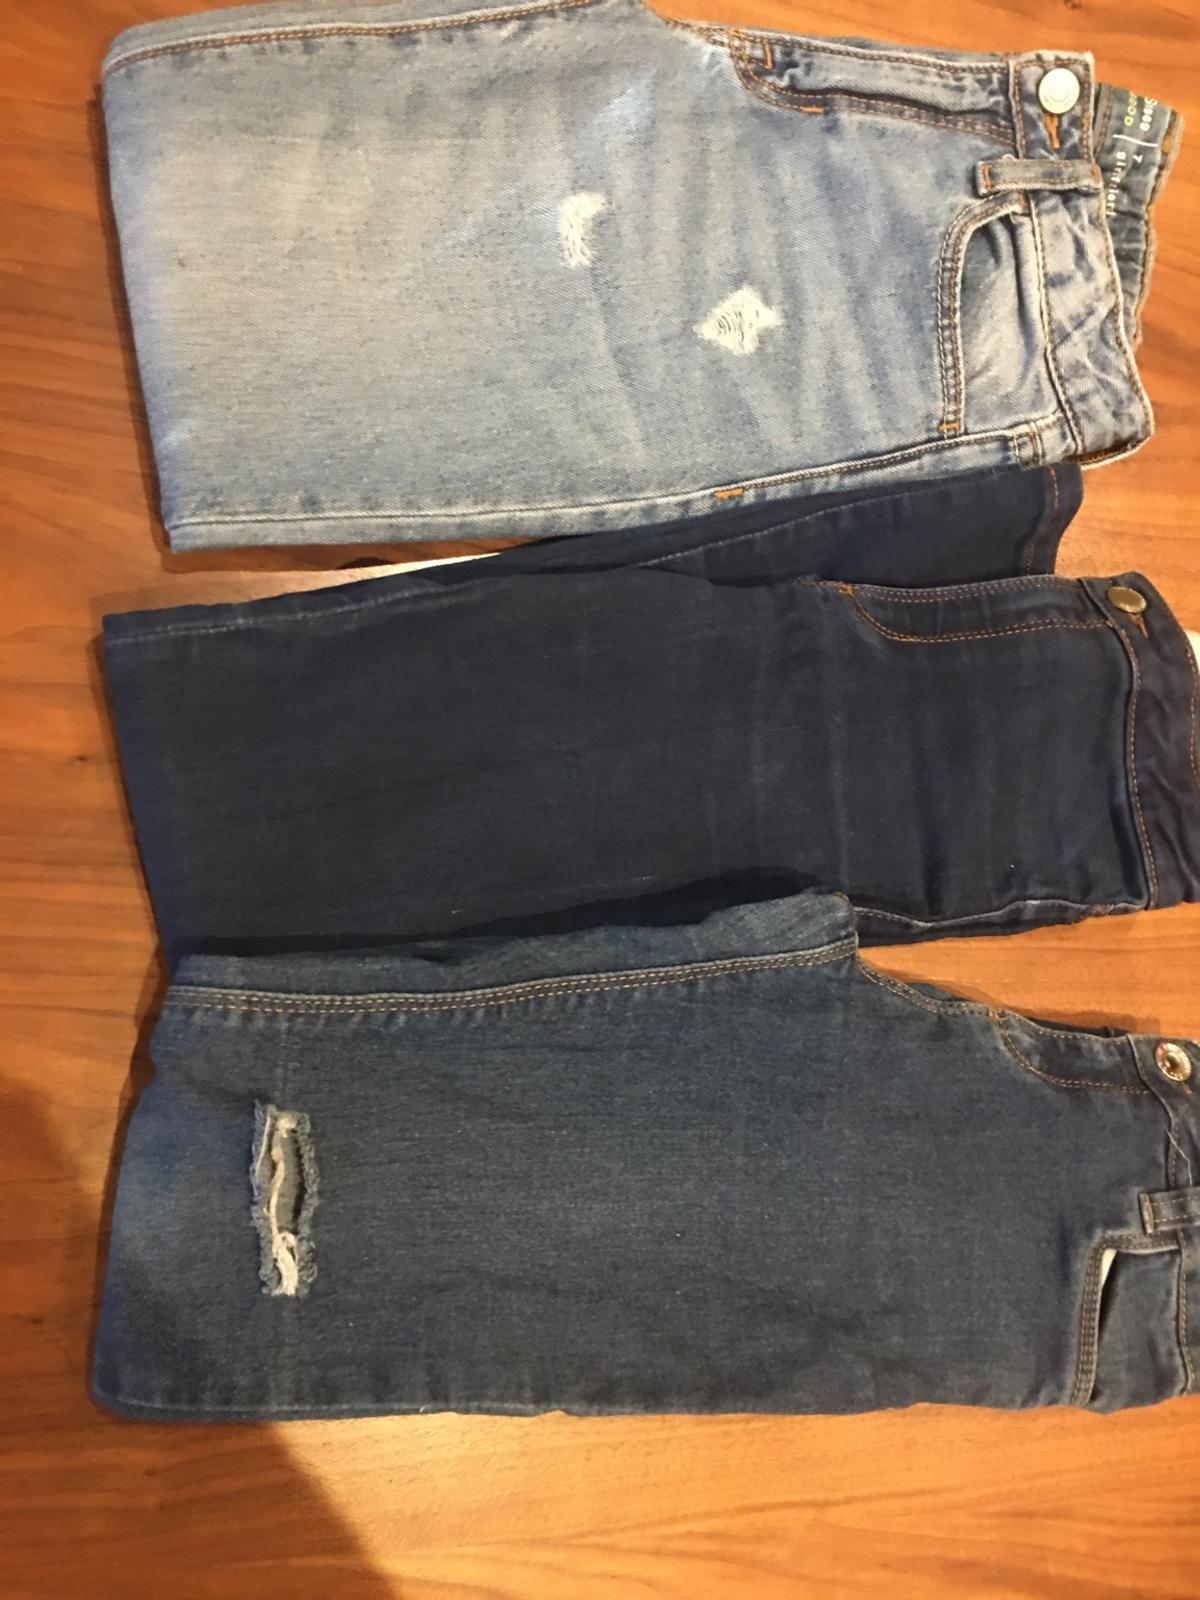 Very good condition 1 girlfriend jean from GAP for 7 year old 1 slim stretch denim jean from Zara for 7 year old 1 skinny jeans from H&M 8 years old